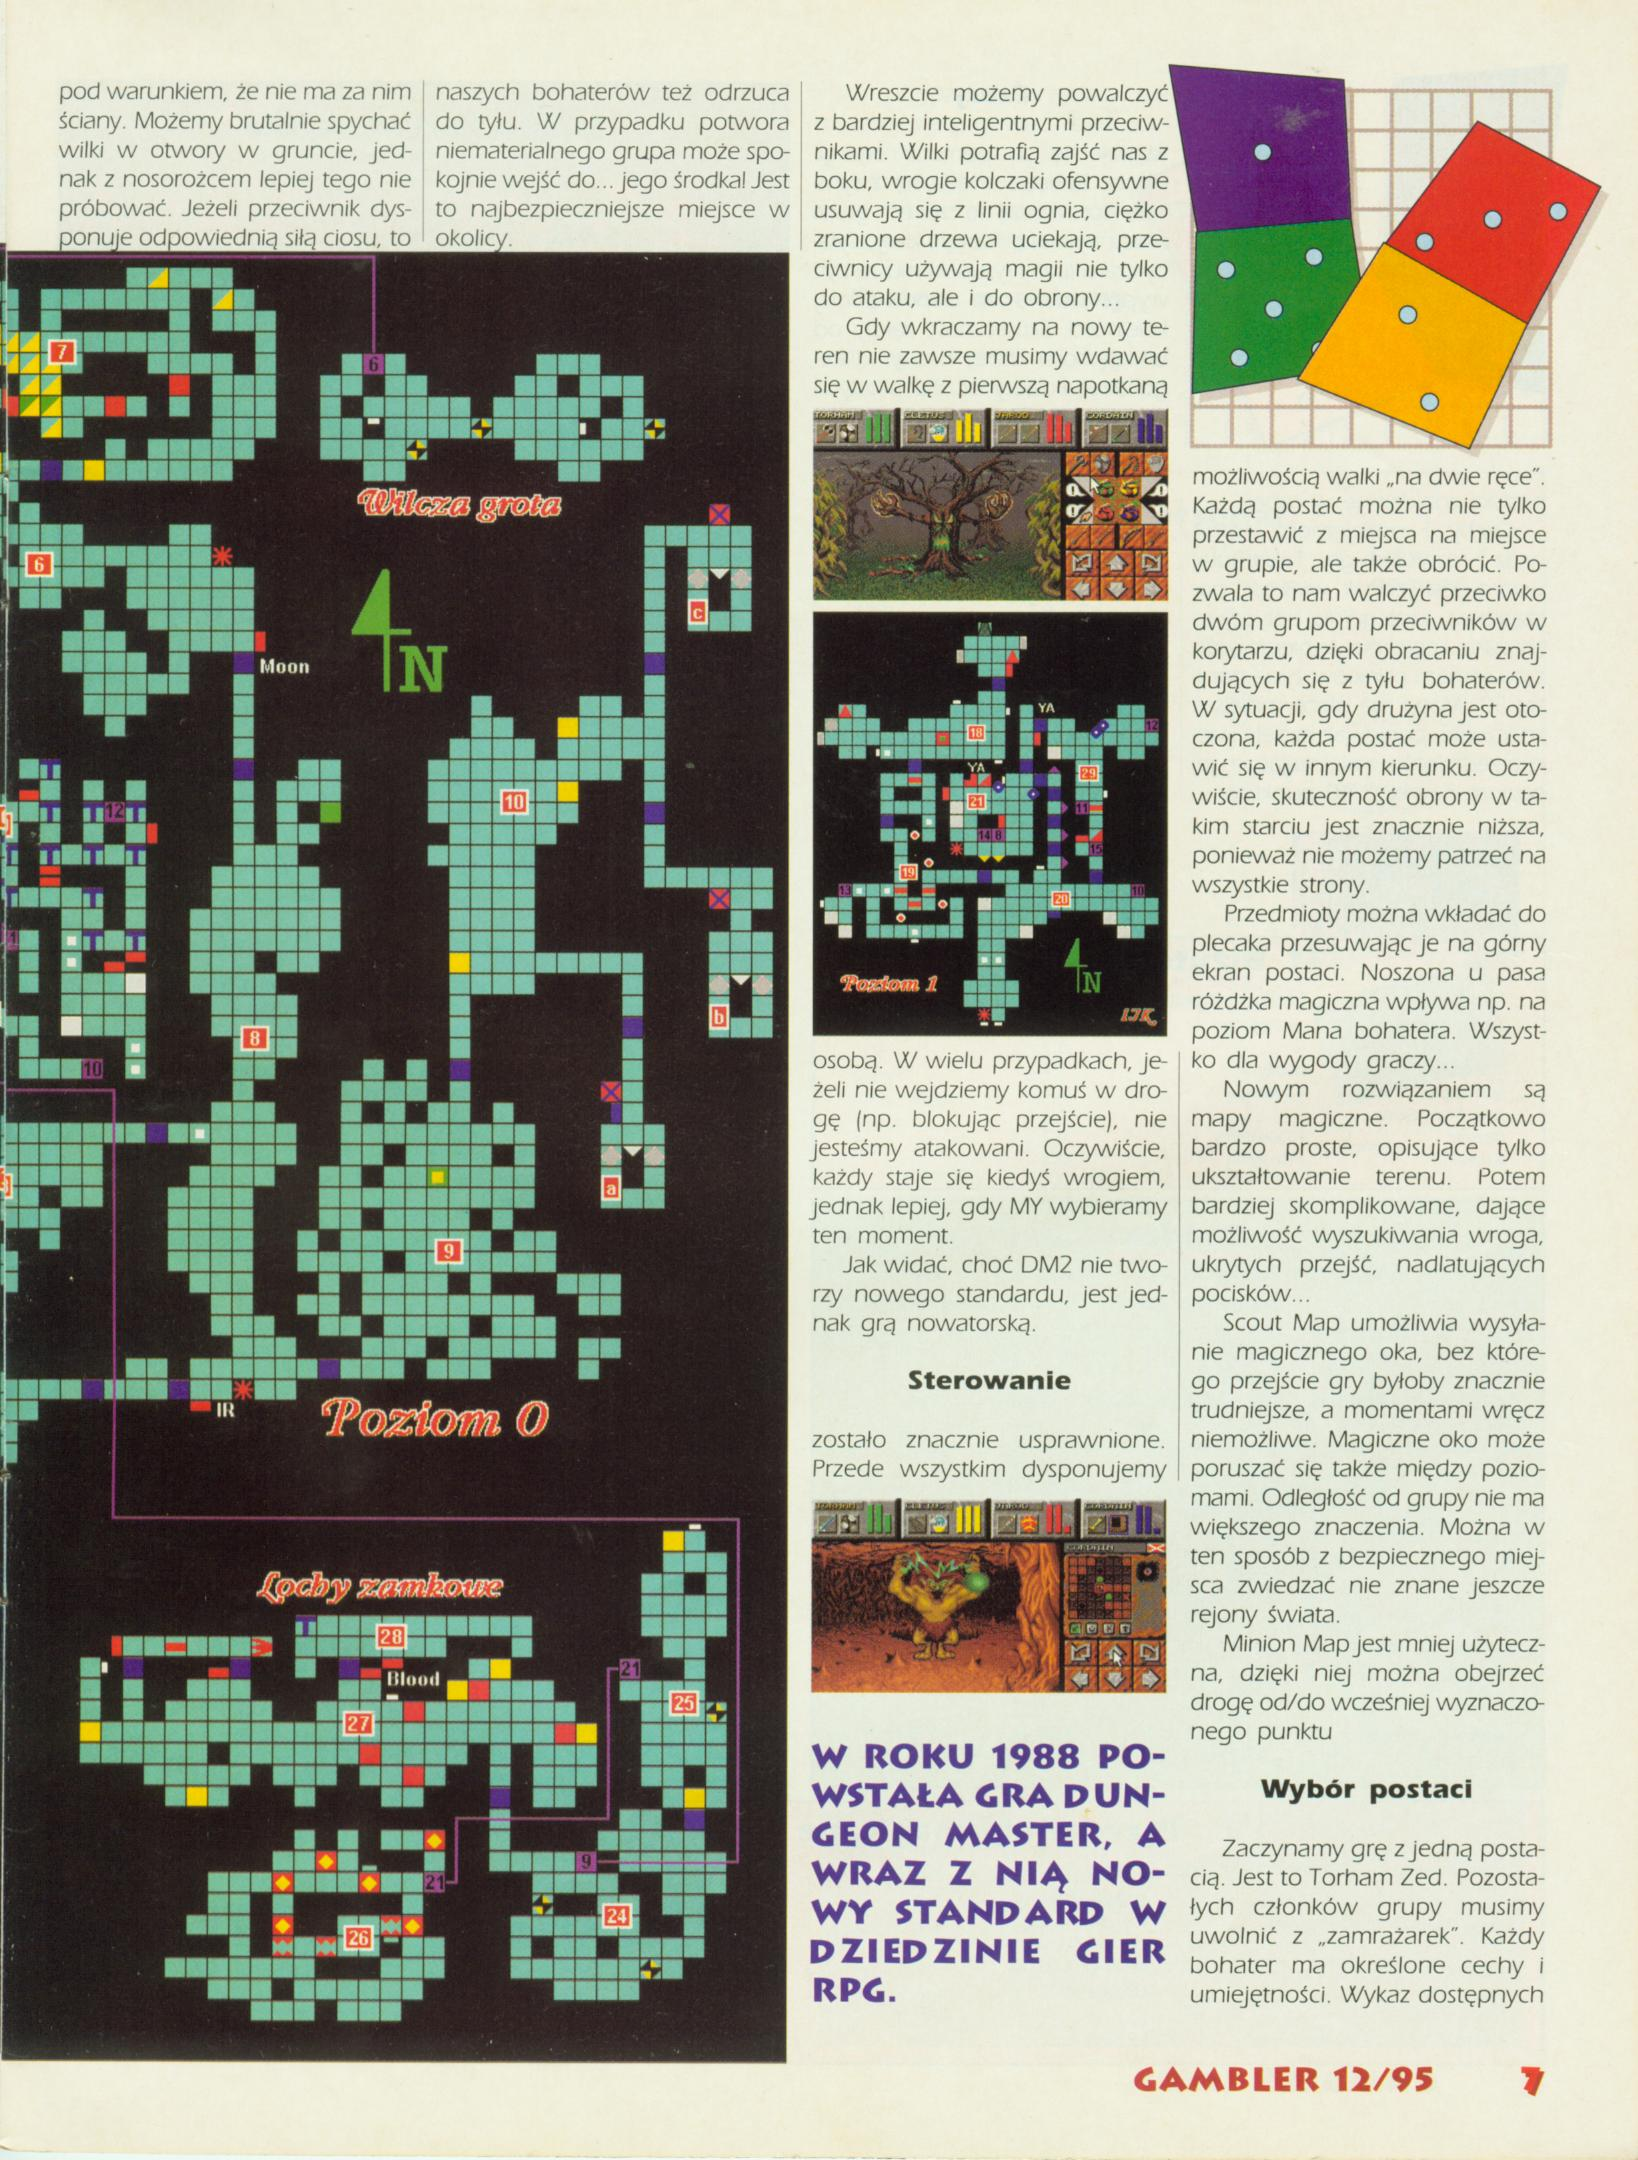 Dungeon Master II Guide published in Polish magazine 'Gambler', December 1995, Page 7